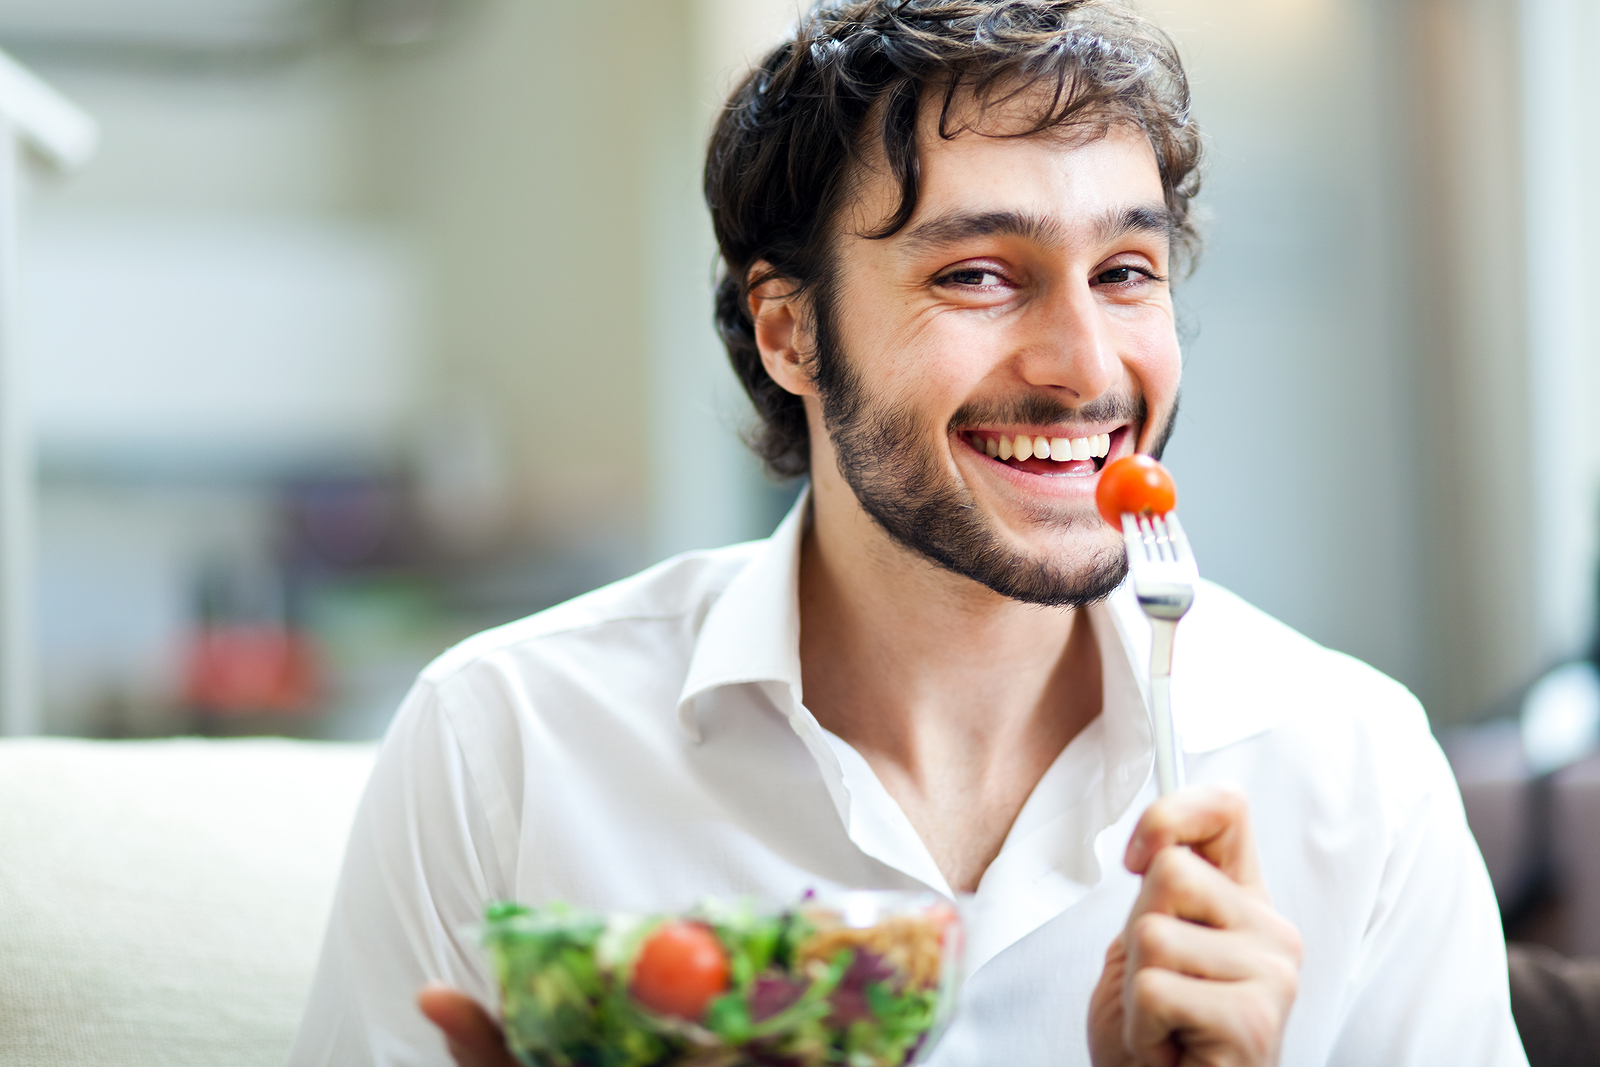 bigstock-Young-man-eating-a-healthy-sal-